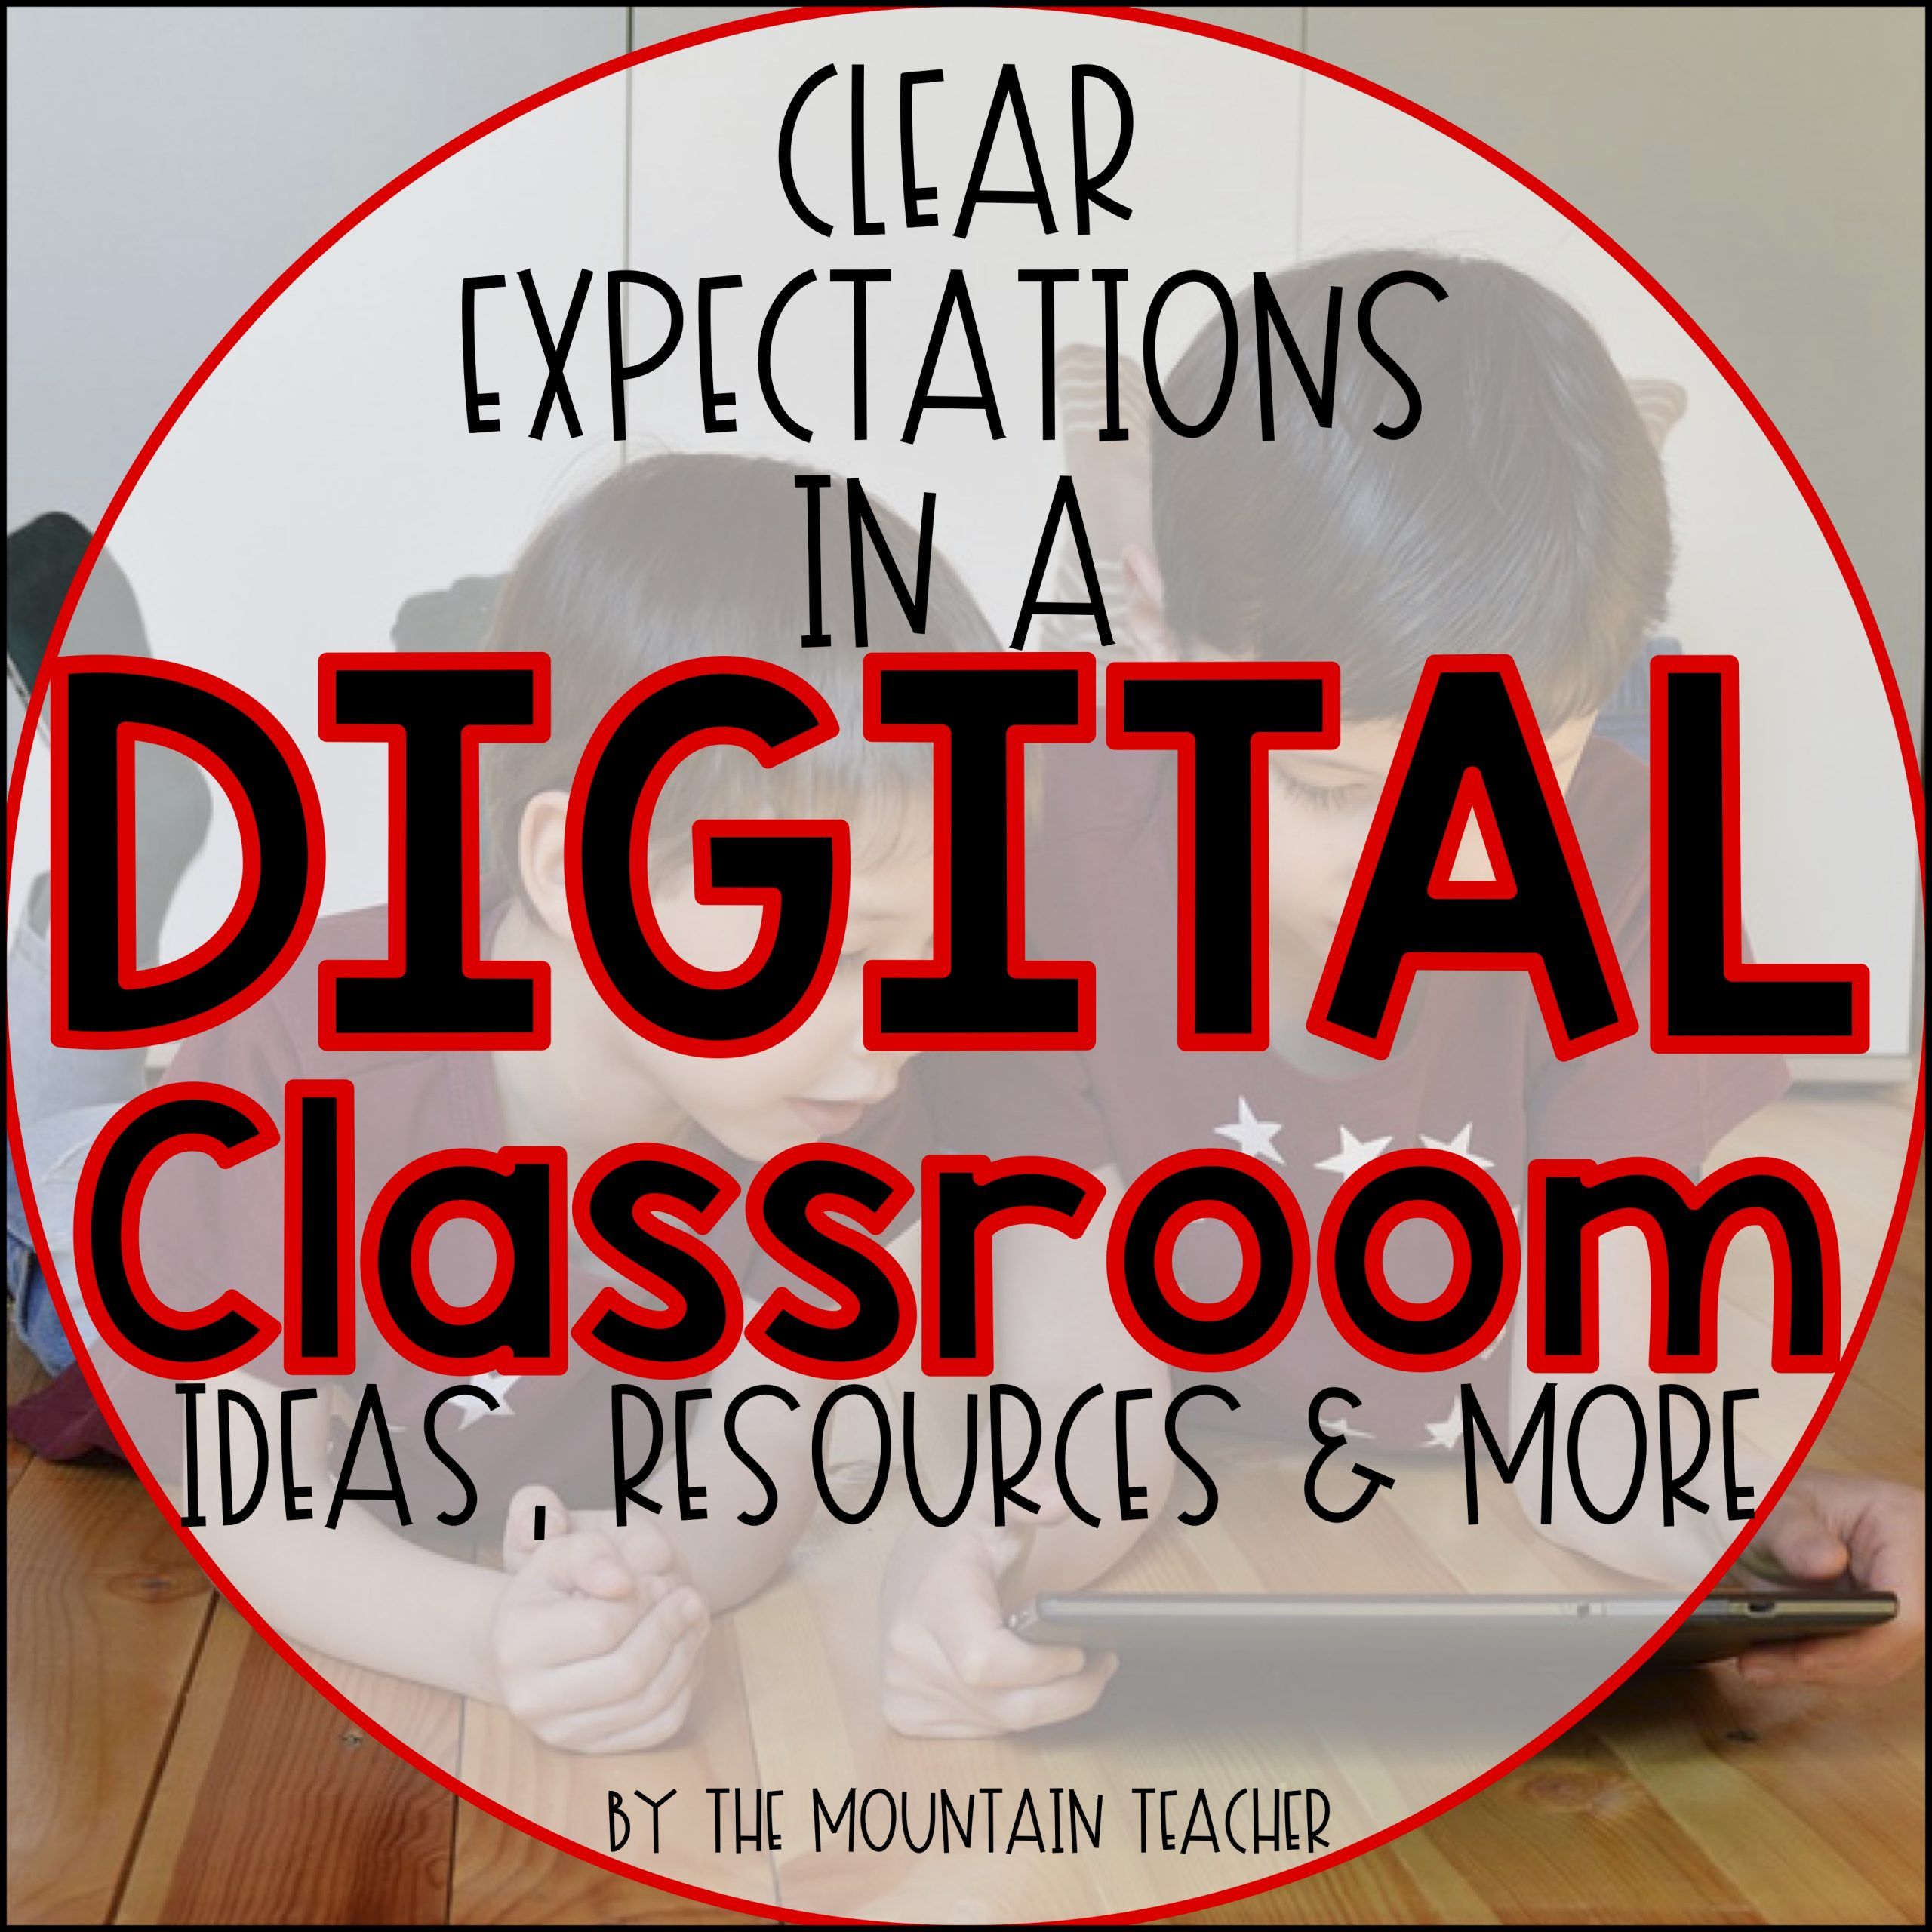 Clear expectations for a digital classroom